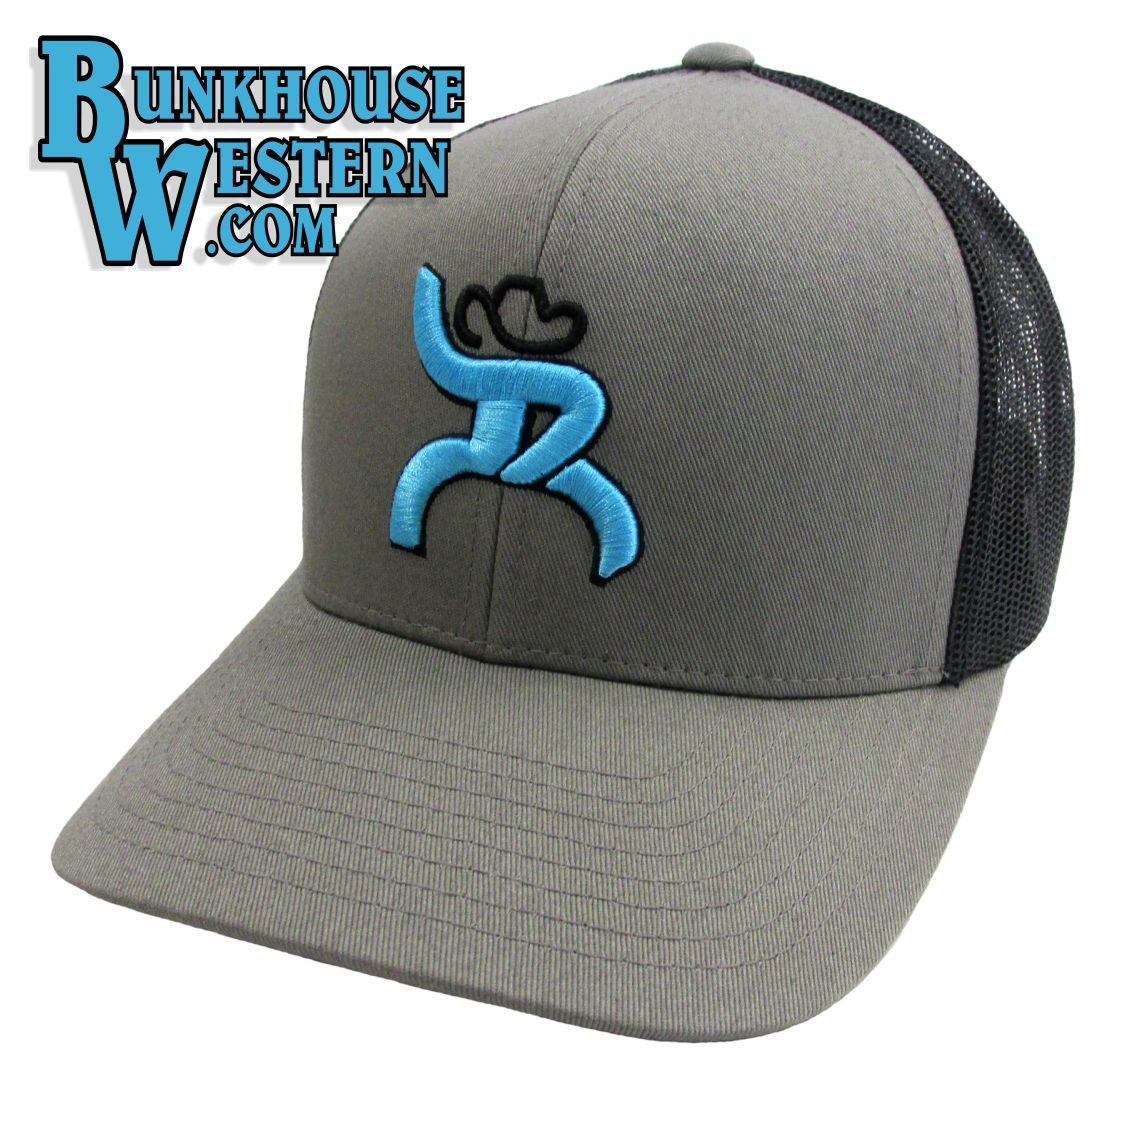 new style 4f5a6 7316d ... good roughy chaparral trucker cap by hooey turquoise roughy man gray  and black 6b94b 0178e